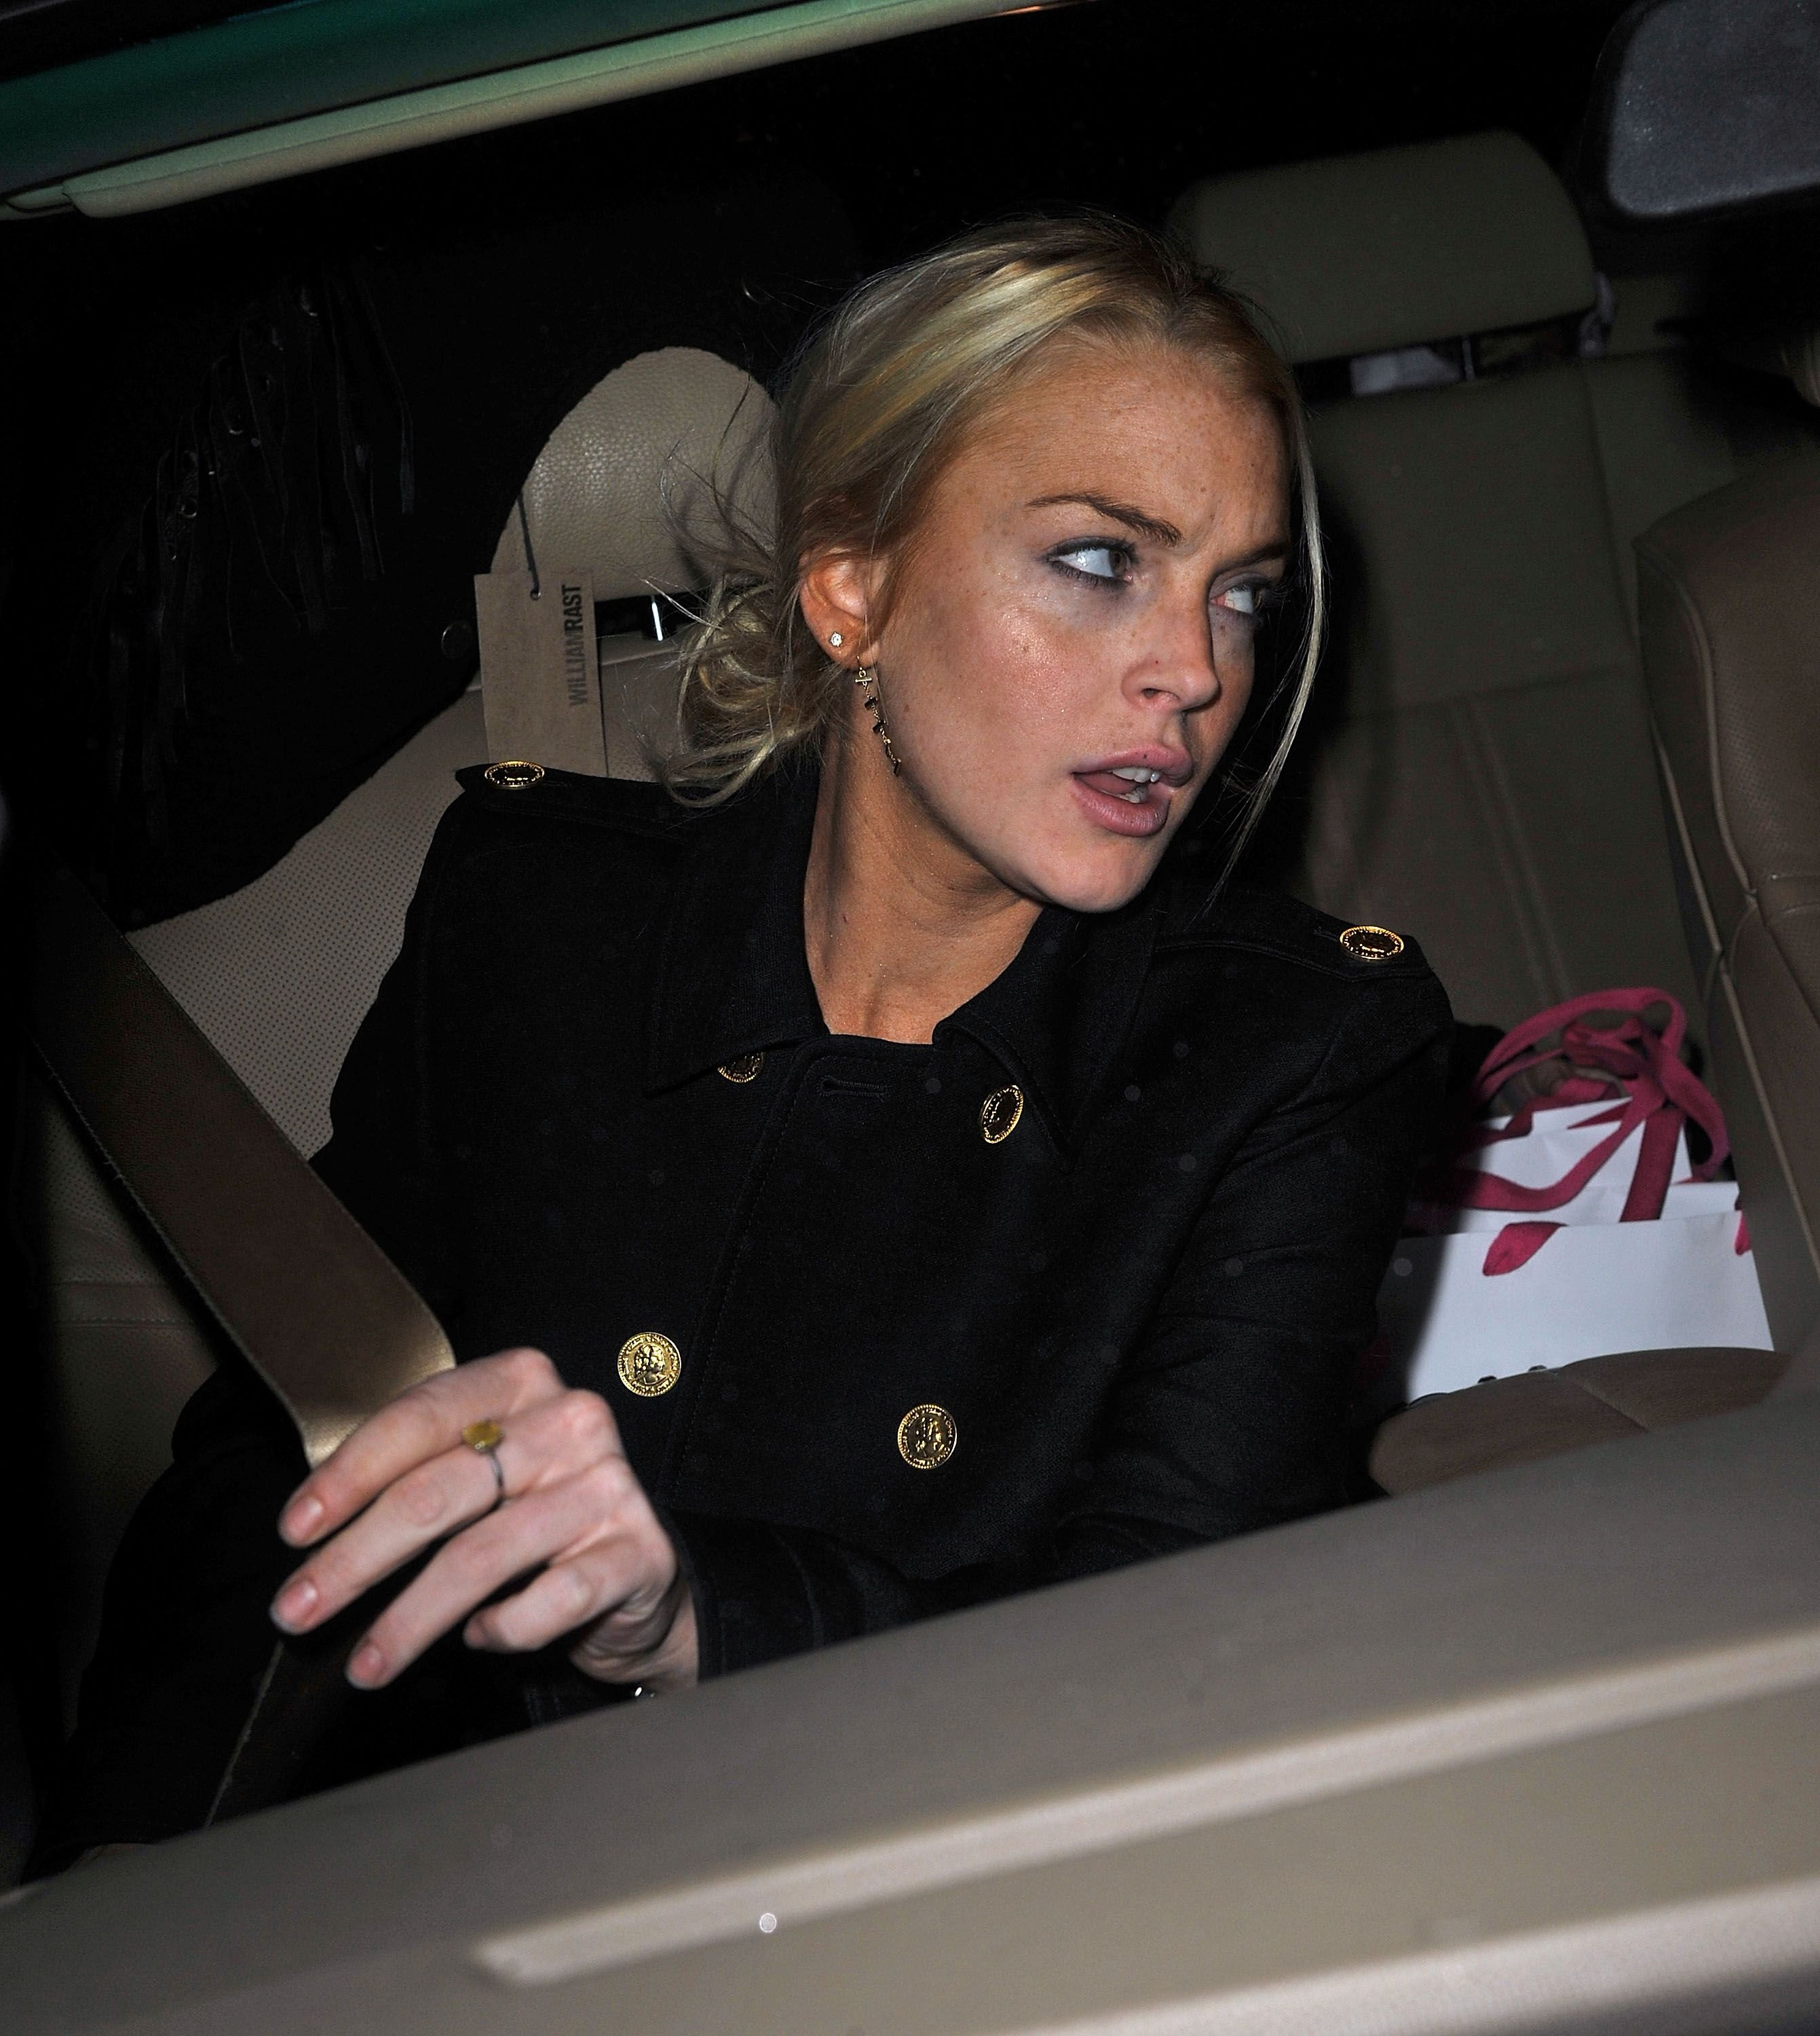 Lindsay Lohan leaving Intermix in SoHo in New York City. | Photo: James Devaney/WireImage via Getty Images